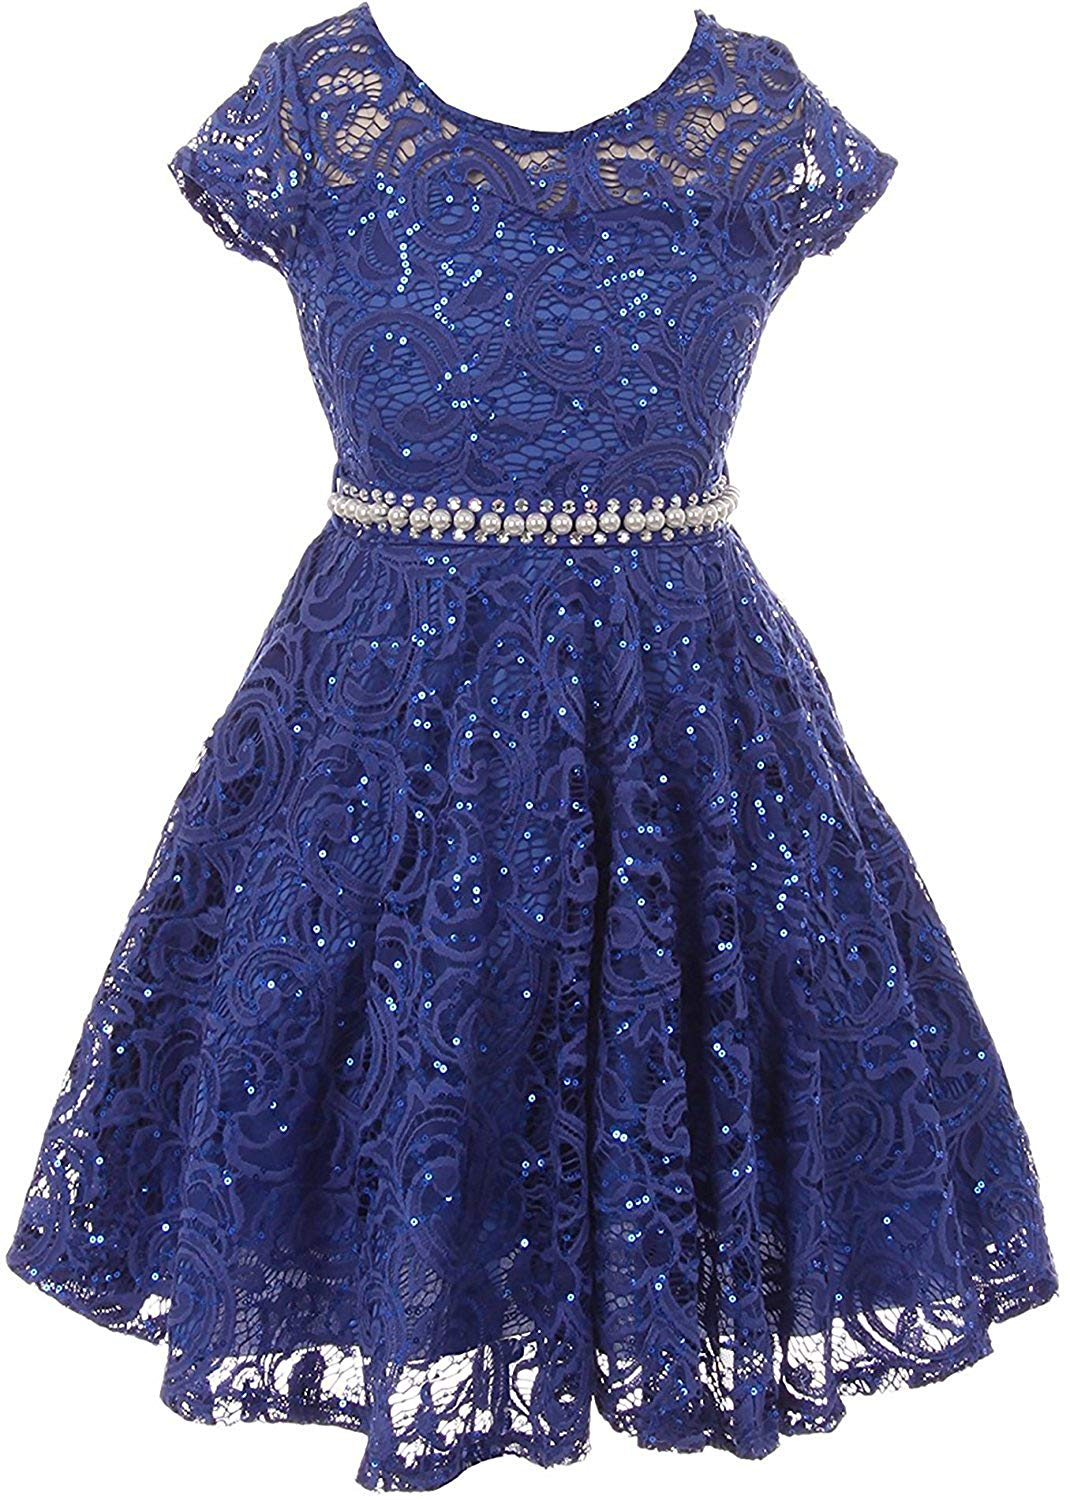 a69d8ba38ed Get Quotations · iGirldress Cap Sleeve Floral Lace Glitter Pearl Holiday Party  Flower Girl Dress (Size 4-